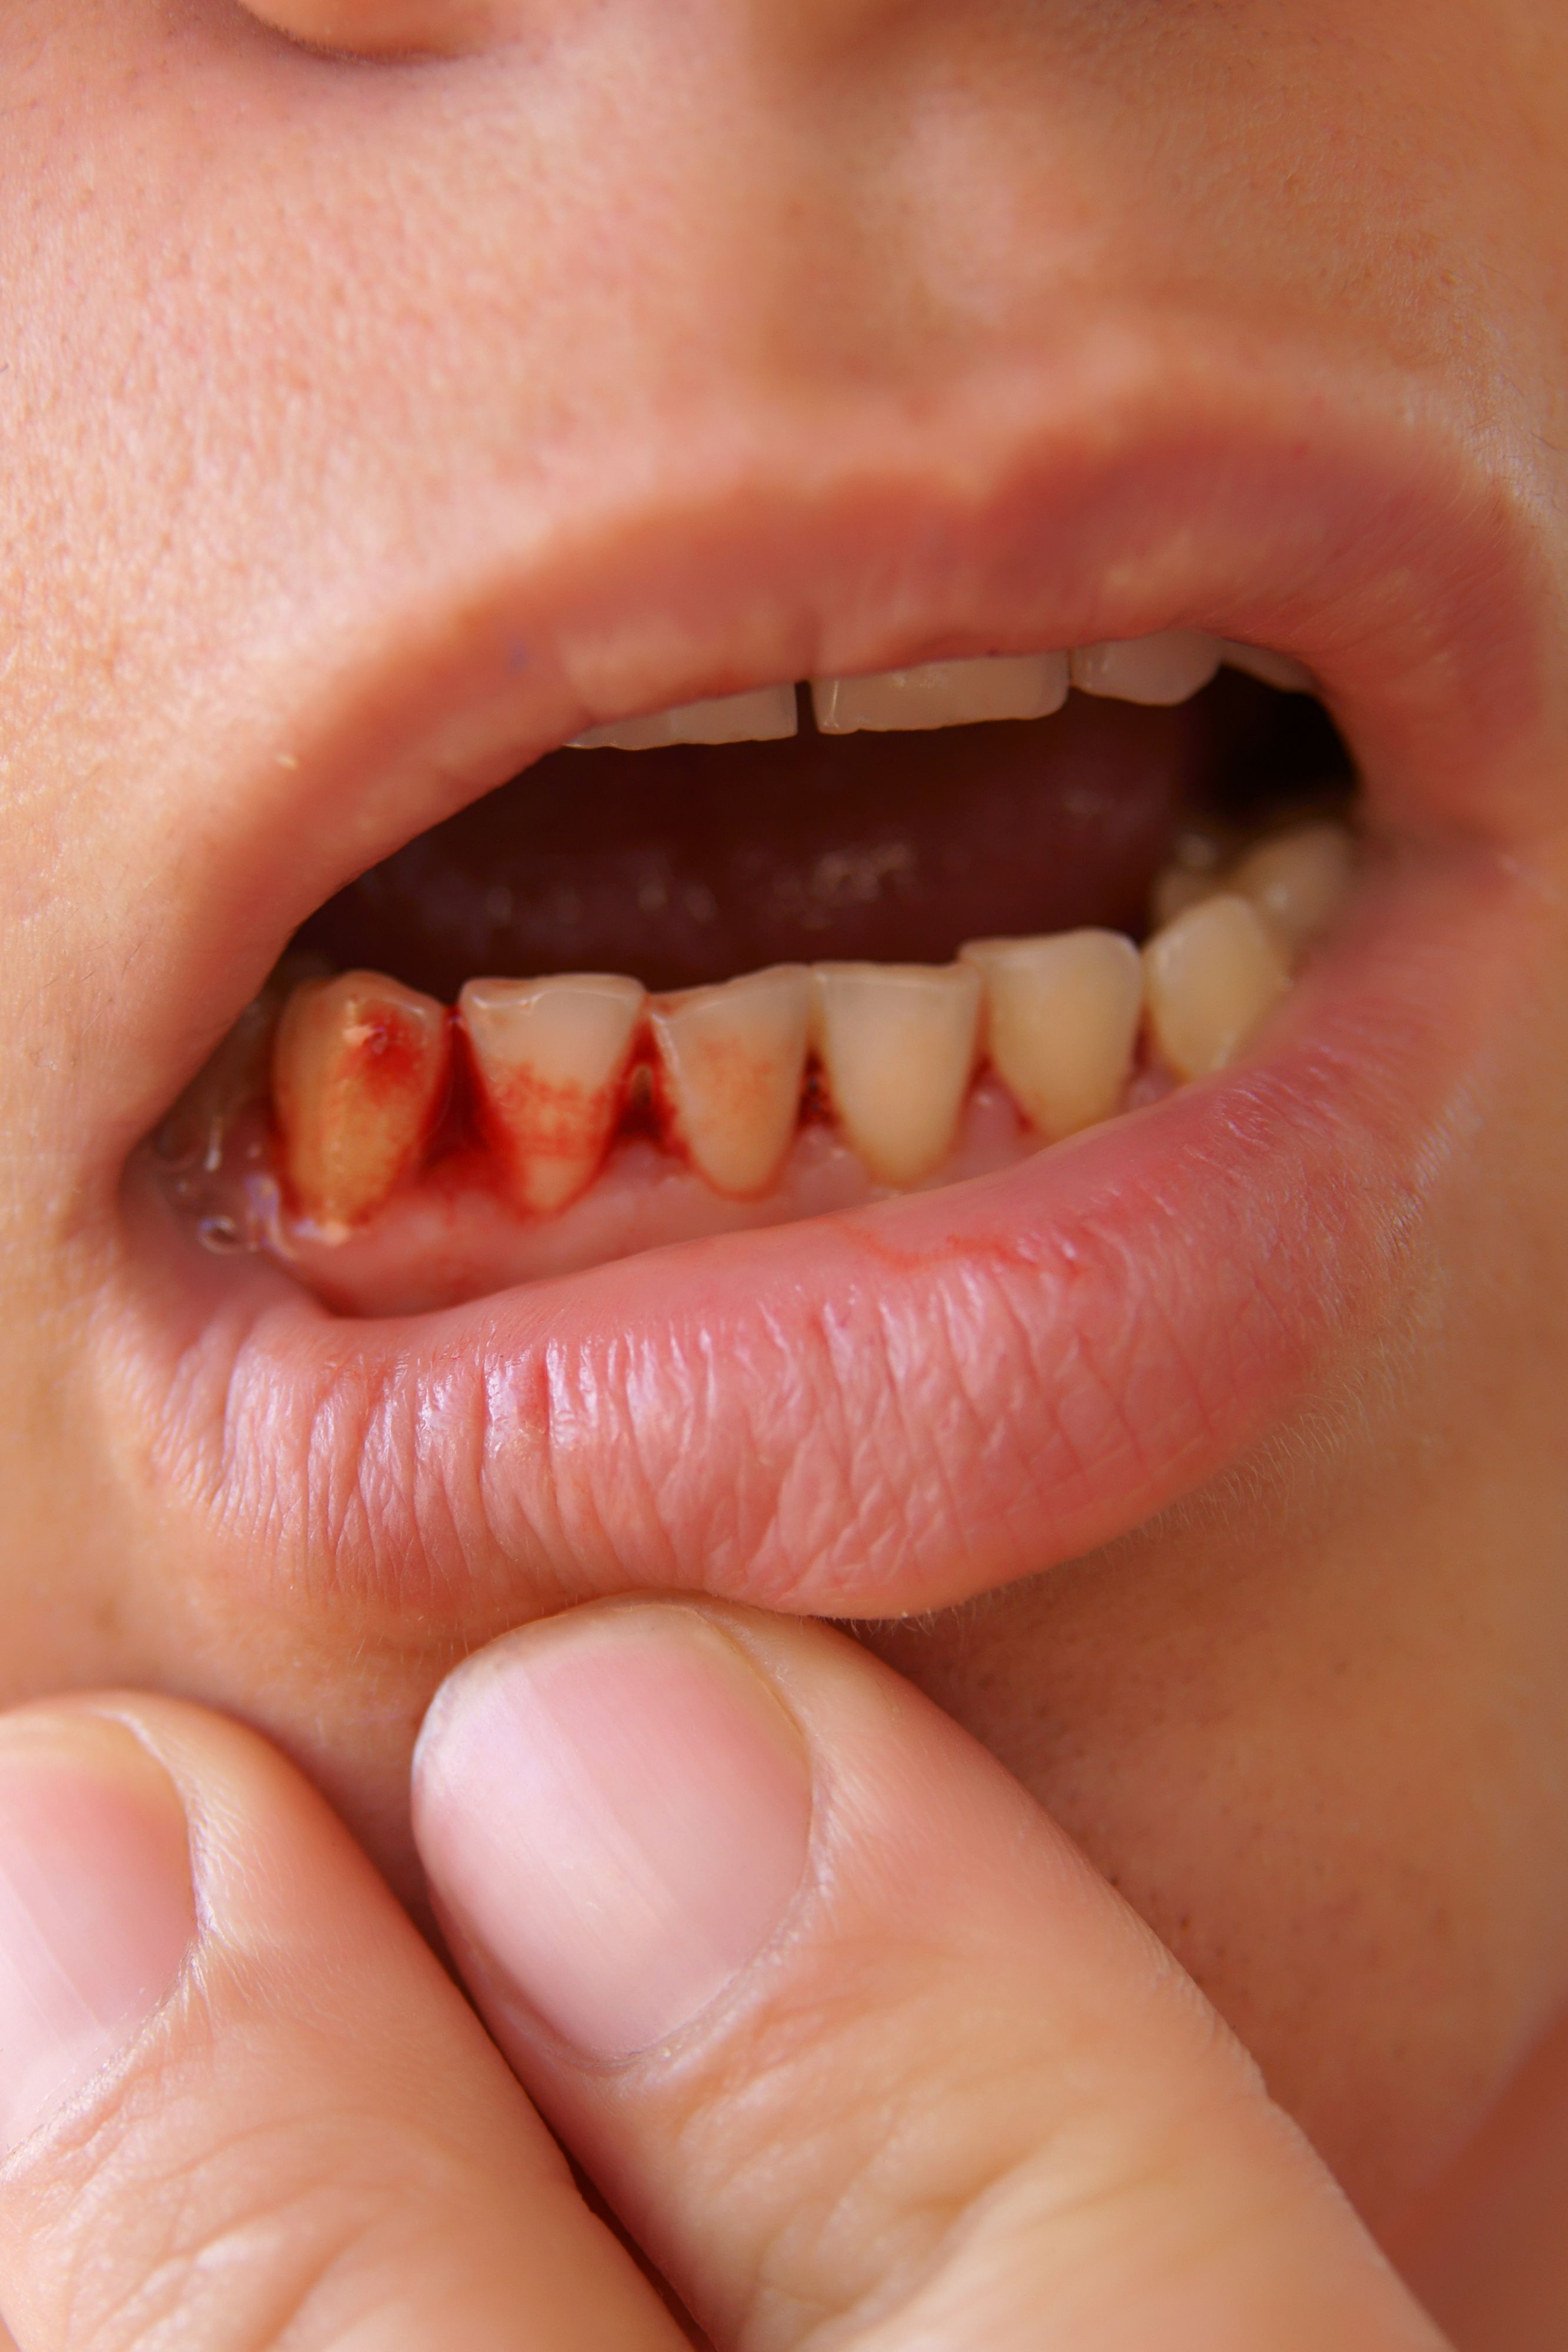 What Teeth Problems Can Tell You About Your Health - Dental Problems